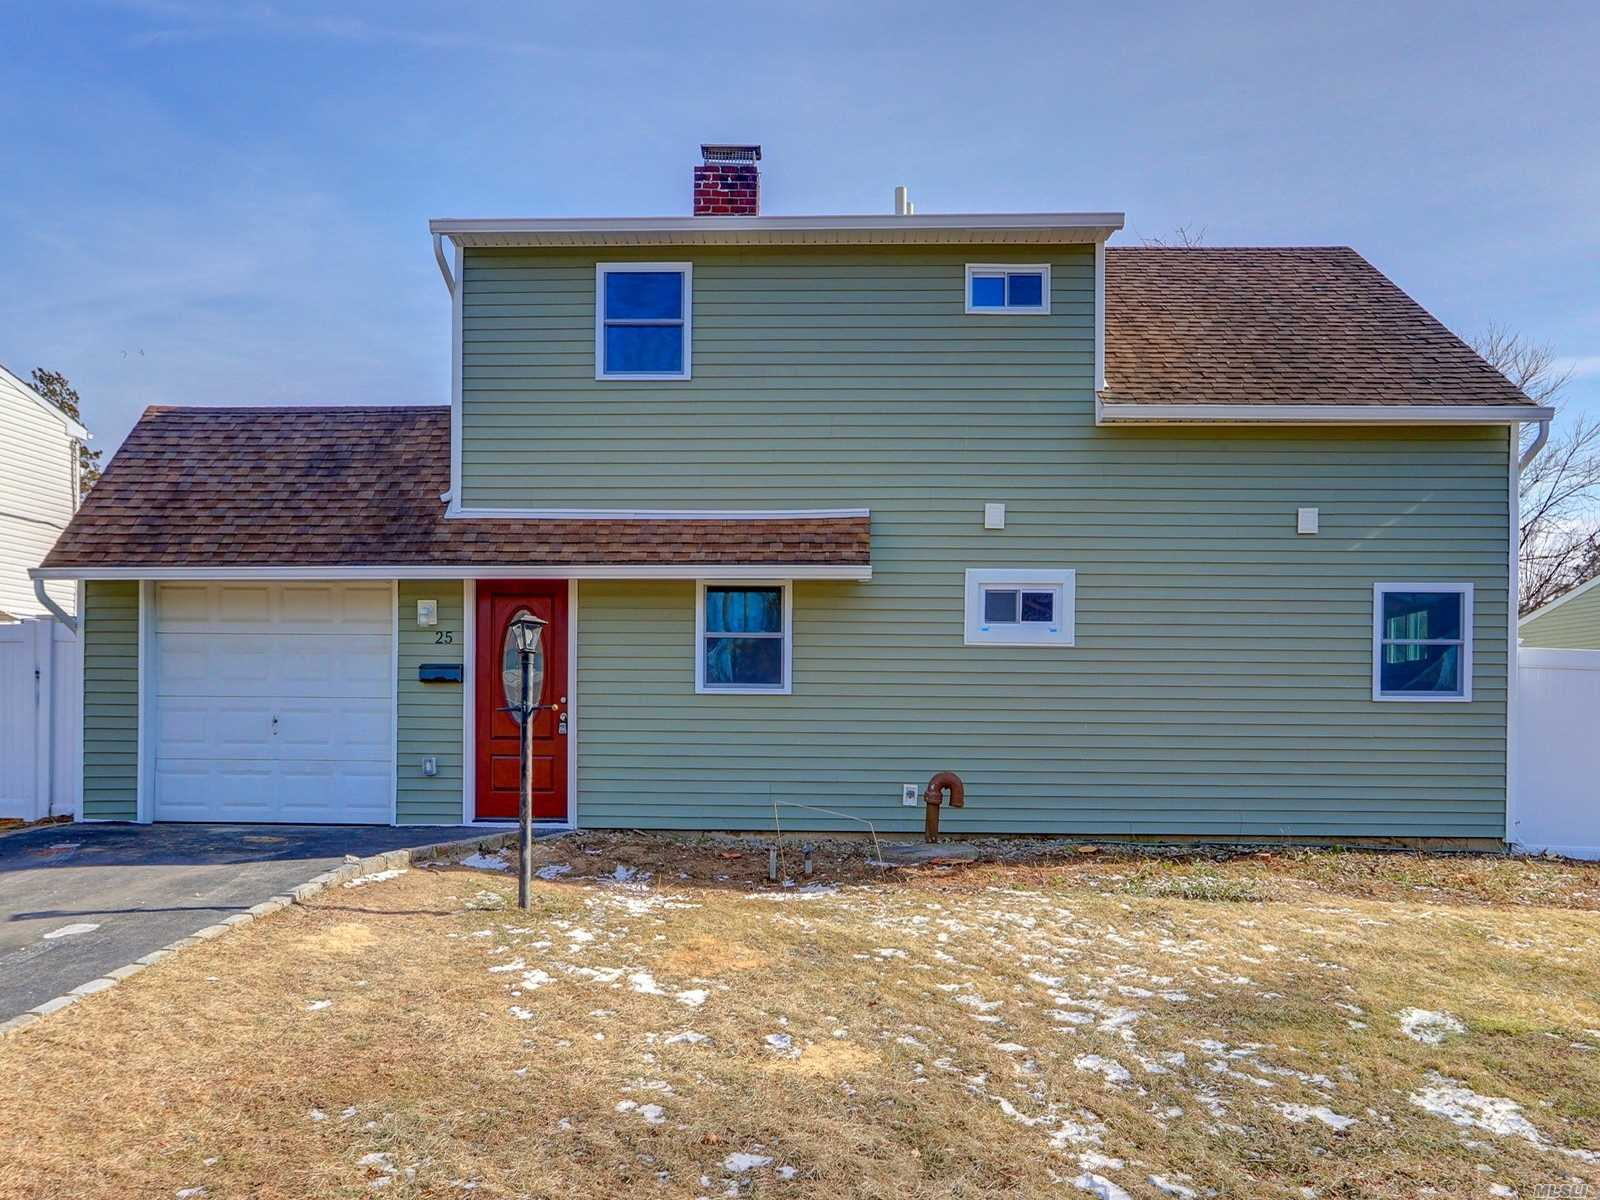 Completely Renovated And Expanded 4 Bedroom Two Bath Ranch. New Eat In Kitchen With Granite Countertops And Stainless Steel Appliances. Living Room Has Been Opened Past Staircase To Create A Formal Dining Room Or Family Room. Three Spacious Bedrooms Up And A New Bathroom.